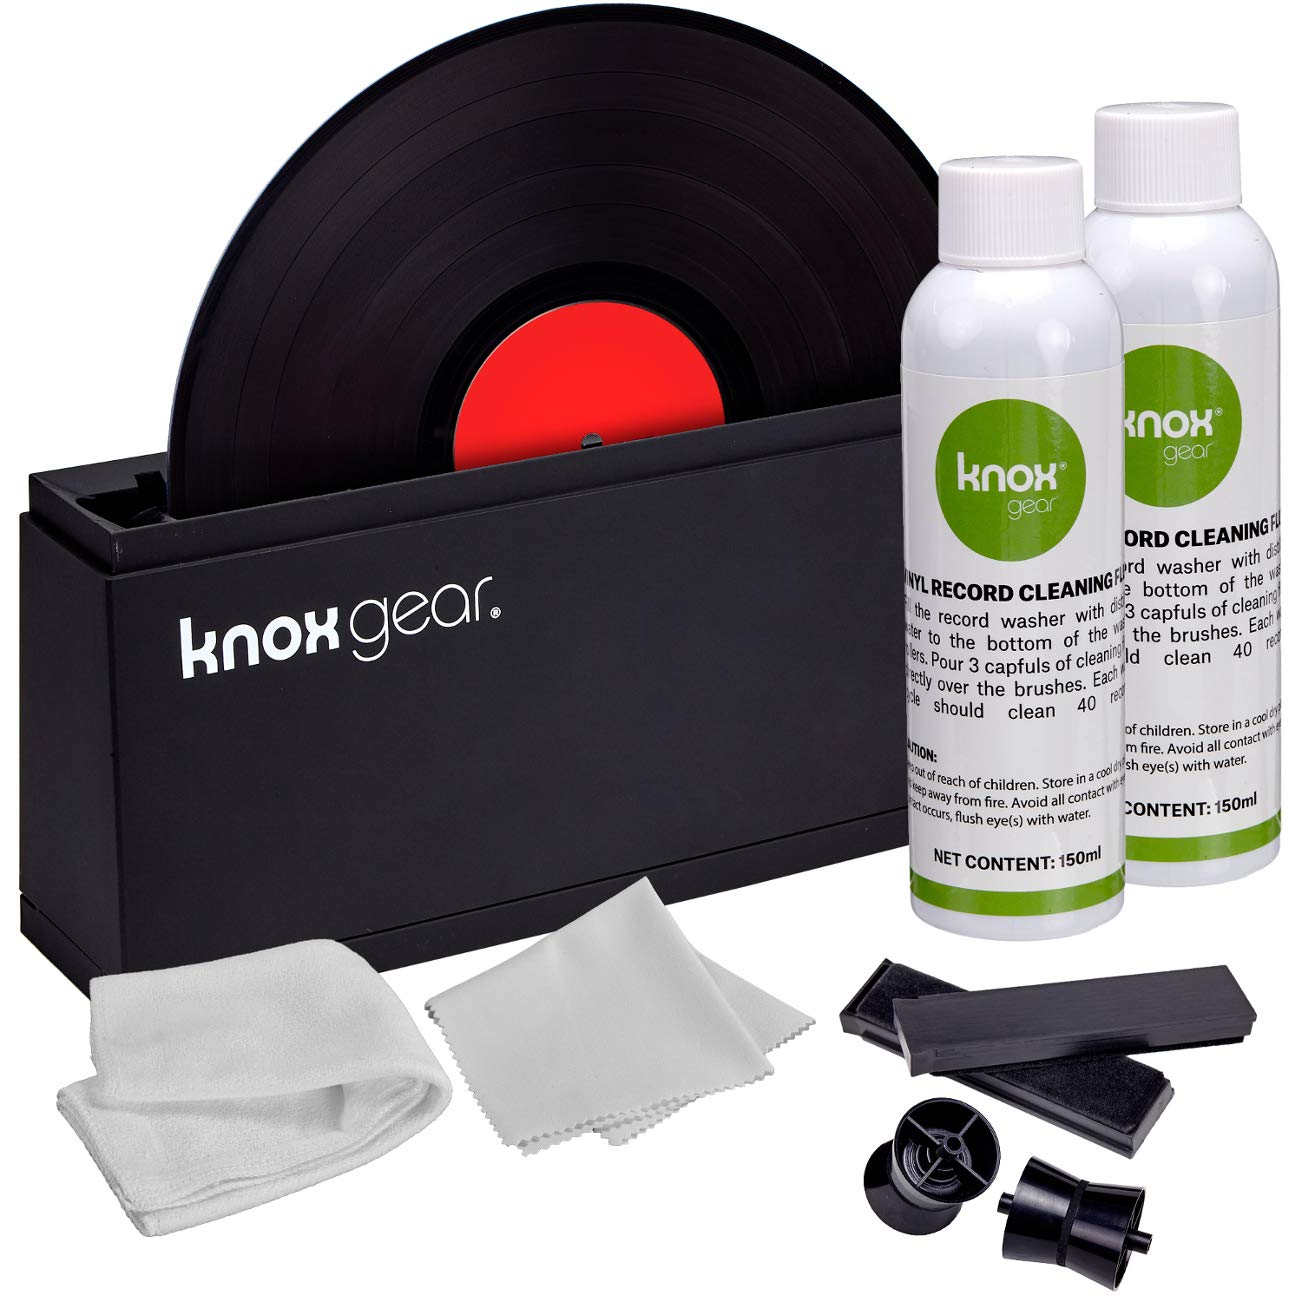 Knox Vinyl Record Cleaner Spin Kit - Washer Basin, Air Drying Rack, Cleaning Fluid, Brushes and Rollers Dryer and Microfiber Cloths - Washes and Dries 7'', 10'' and 12'' Discs